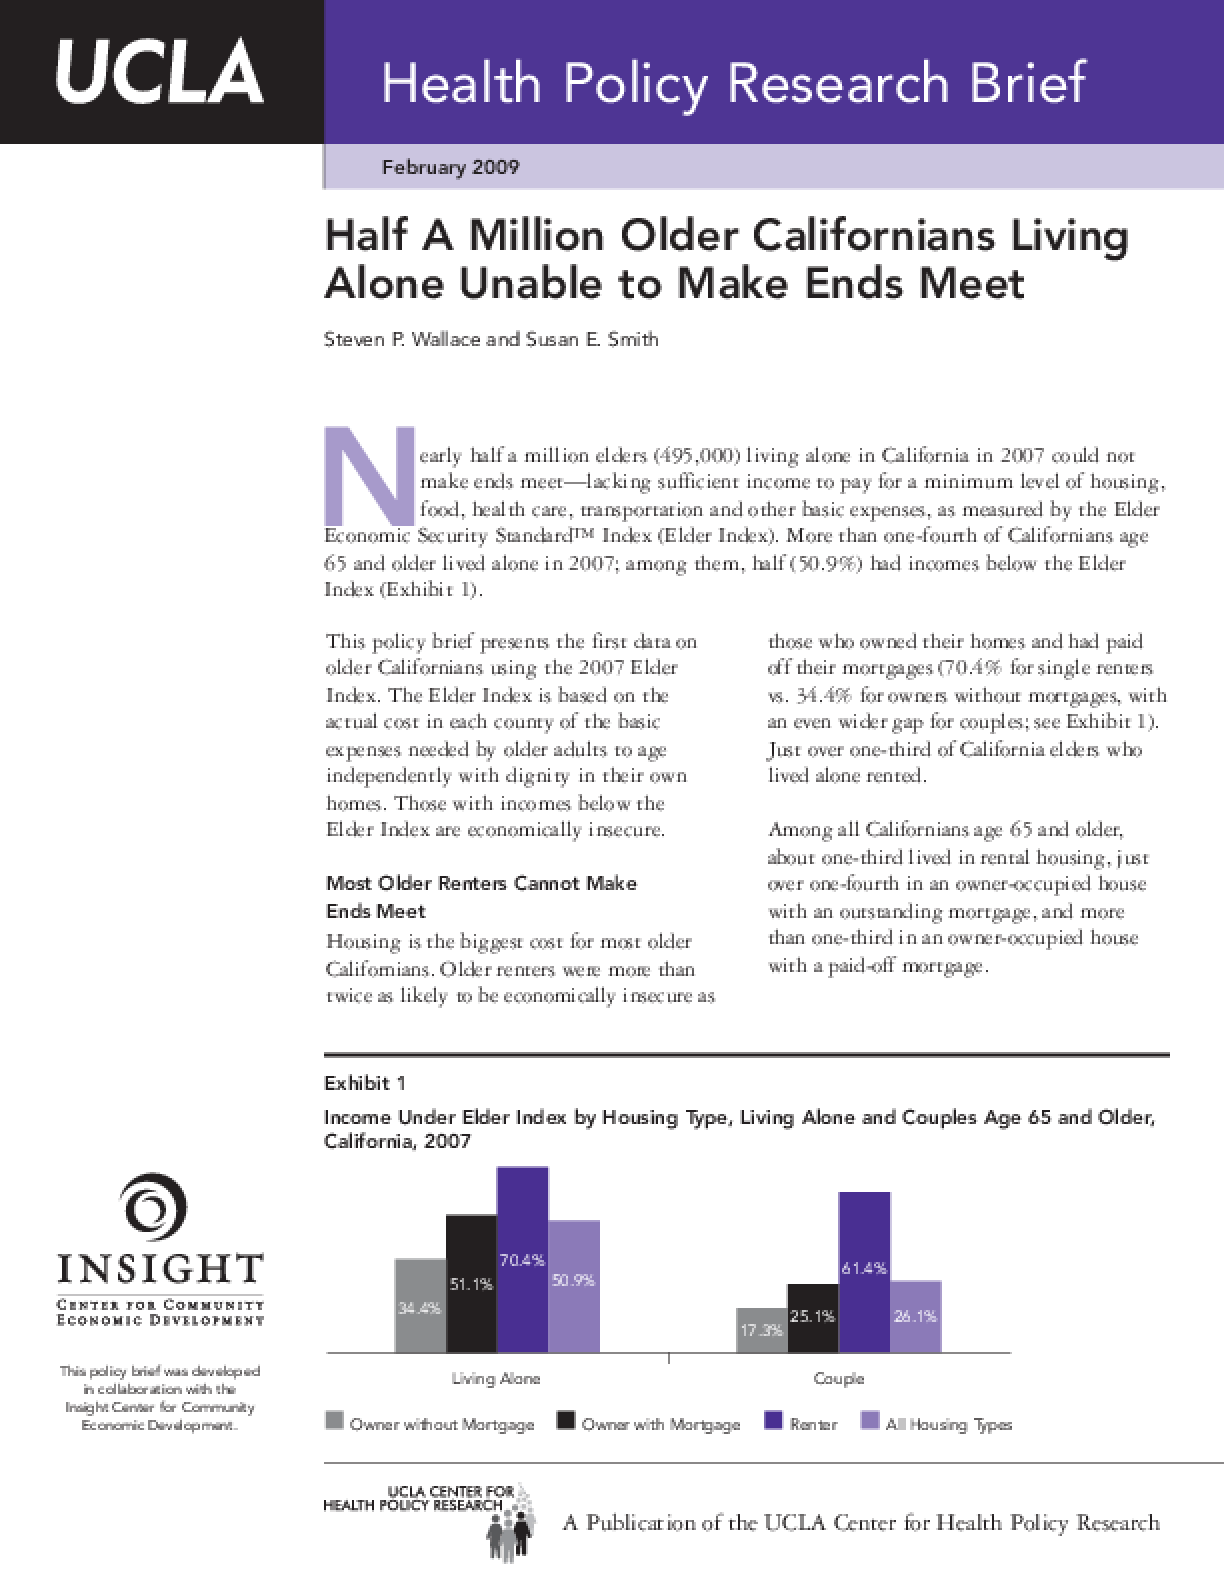 Half a Million Older Californians Living Alone Unable to Make Ends Meet